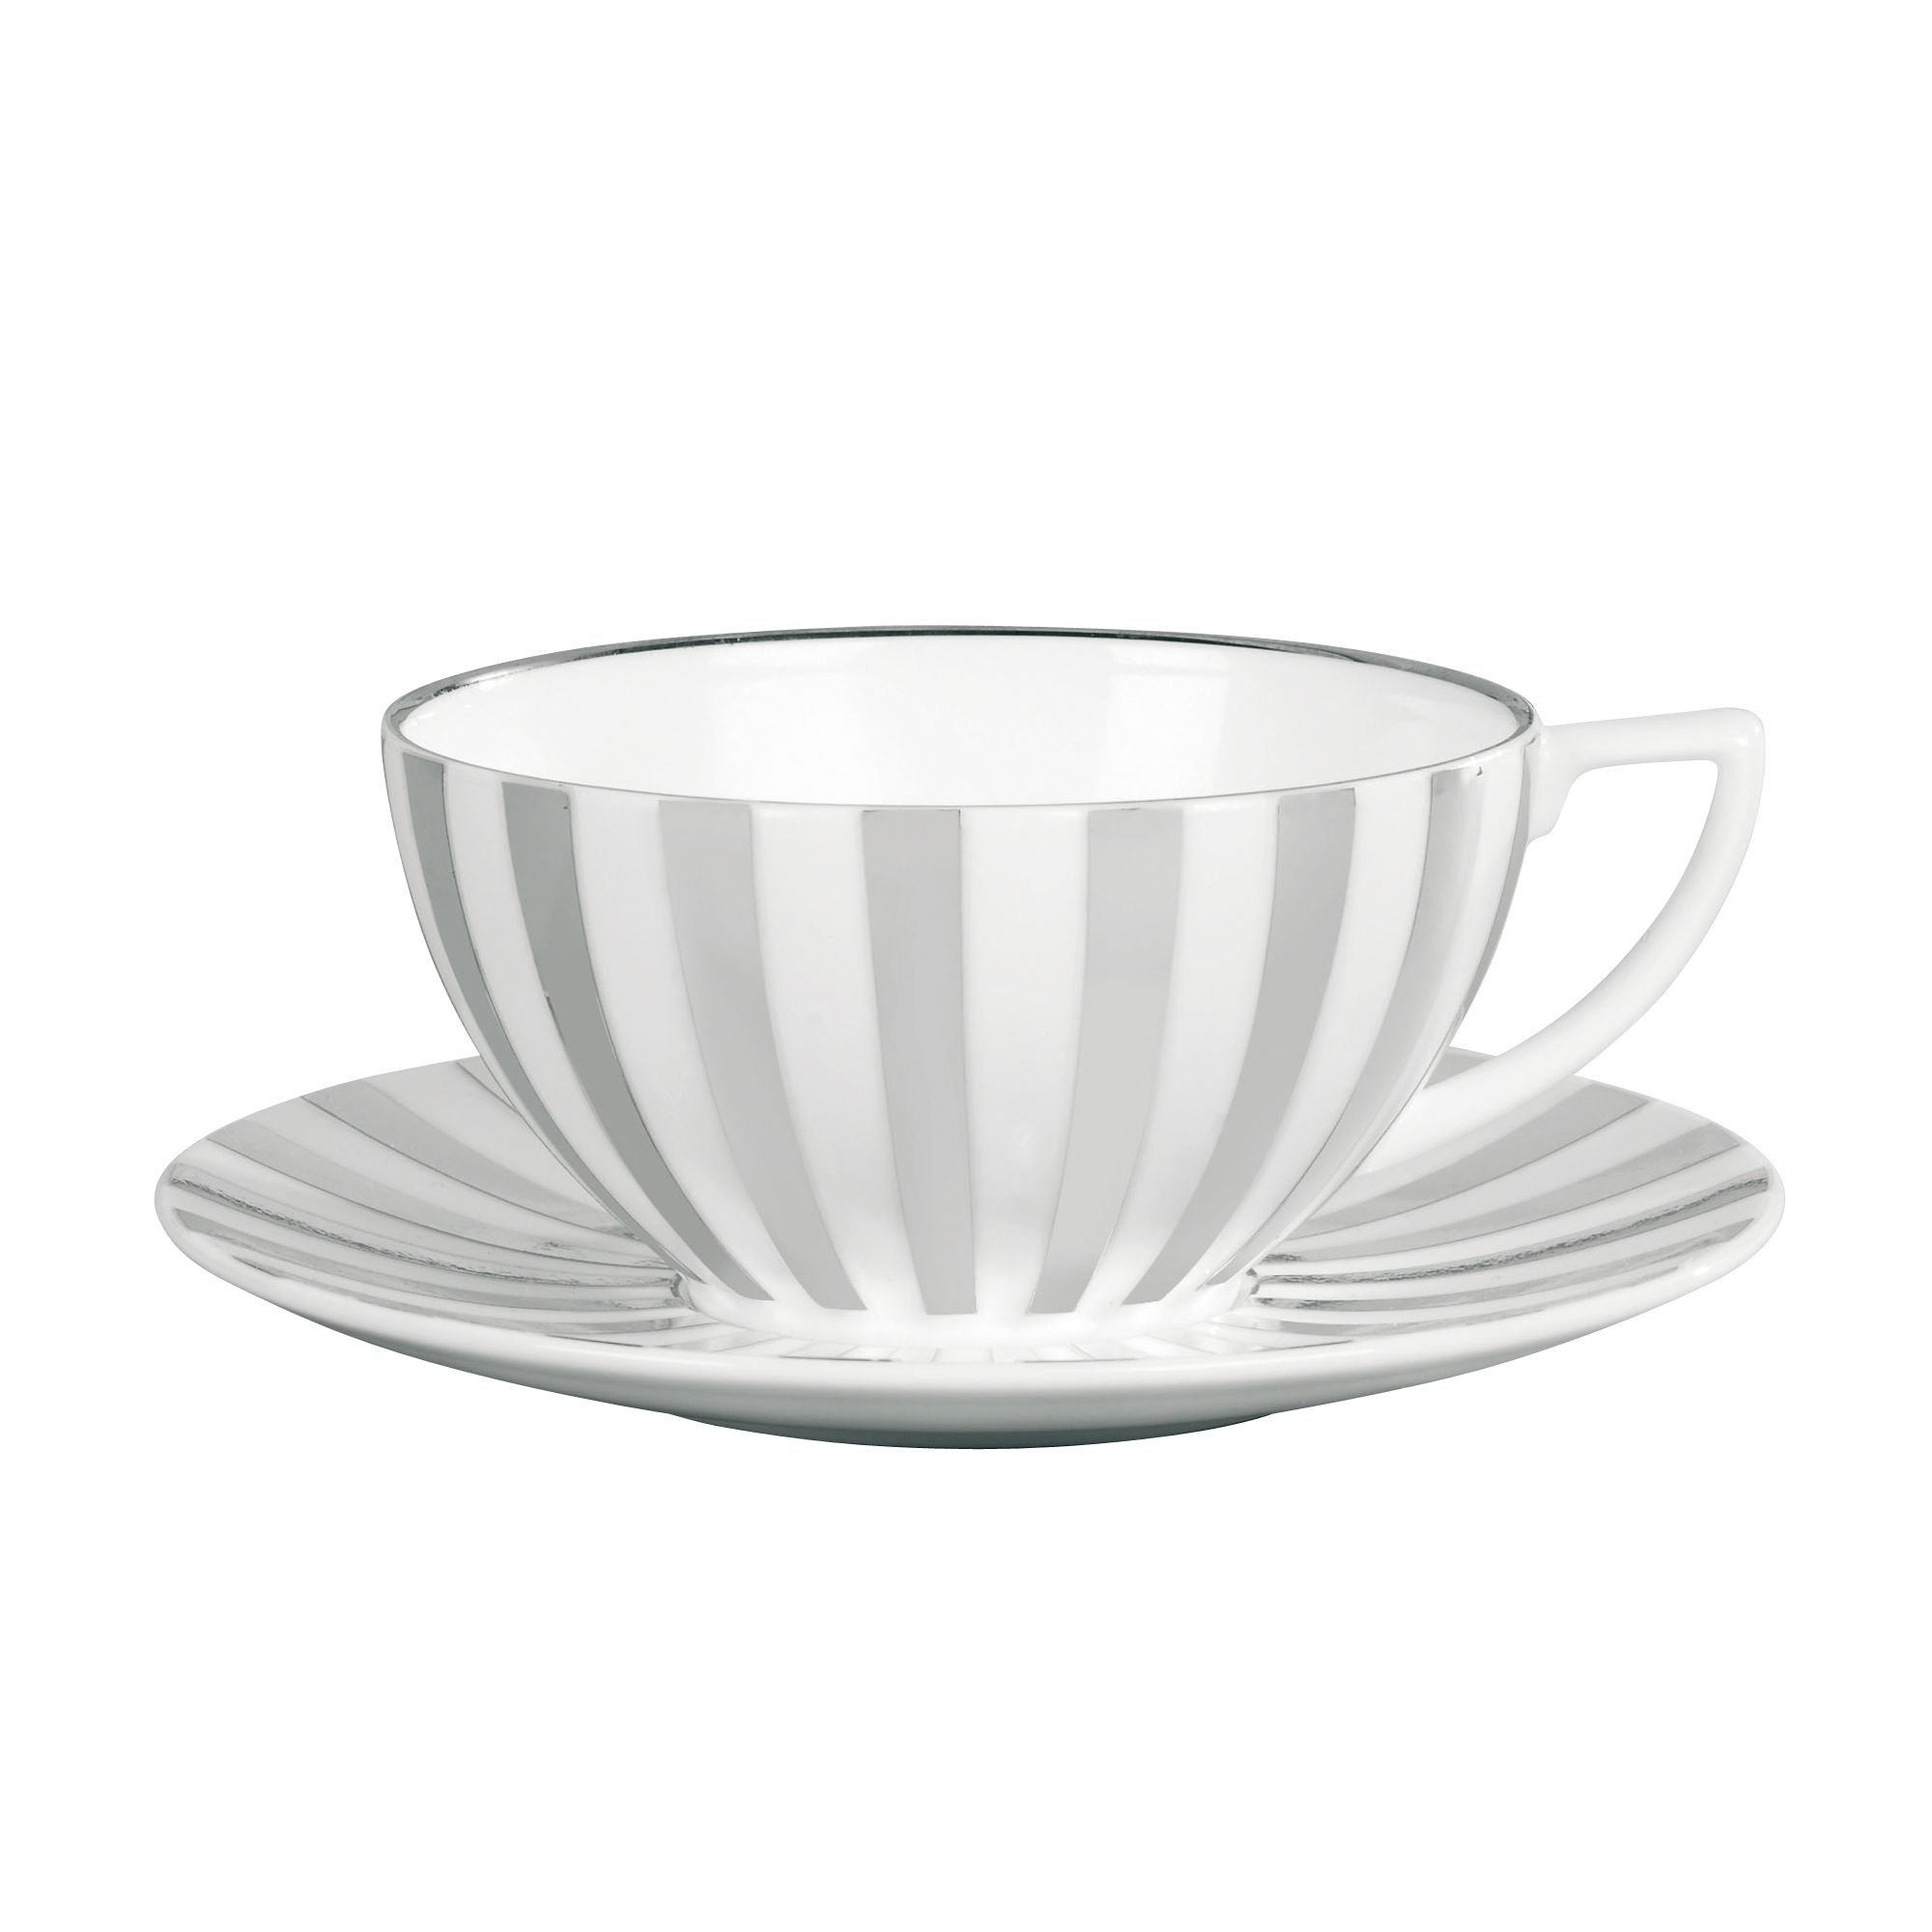 Platinum Striped Tea Saucer